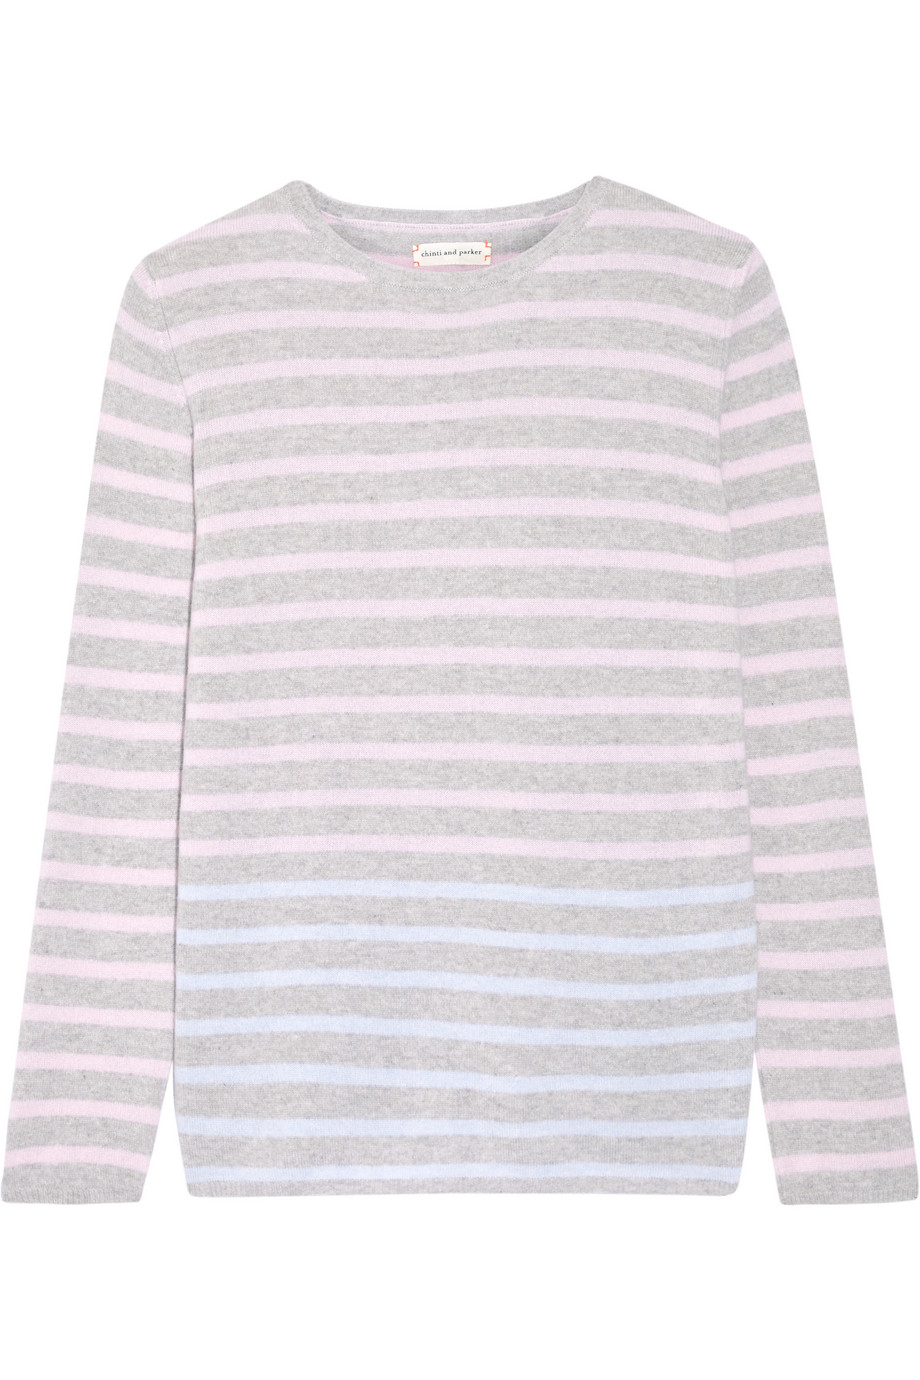 Striped Cashmere Sweater, Chinti and Parker, Pastel Pink, Women's